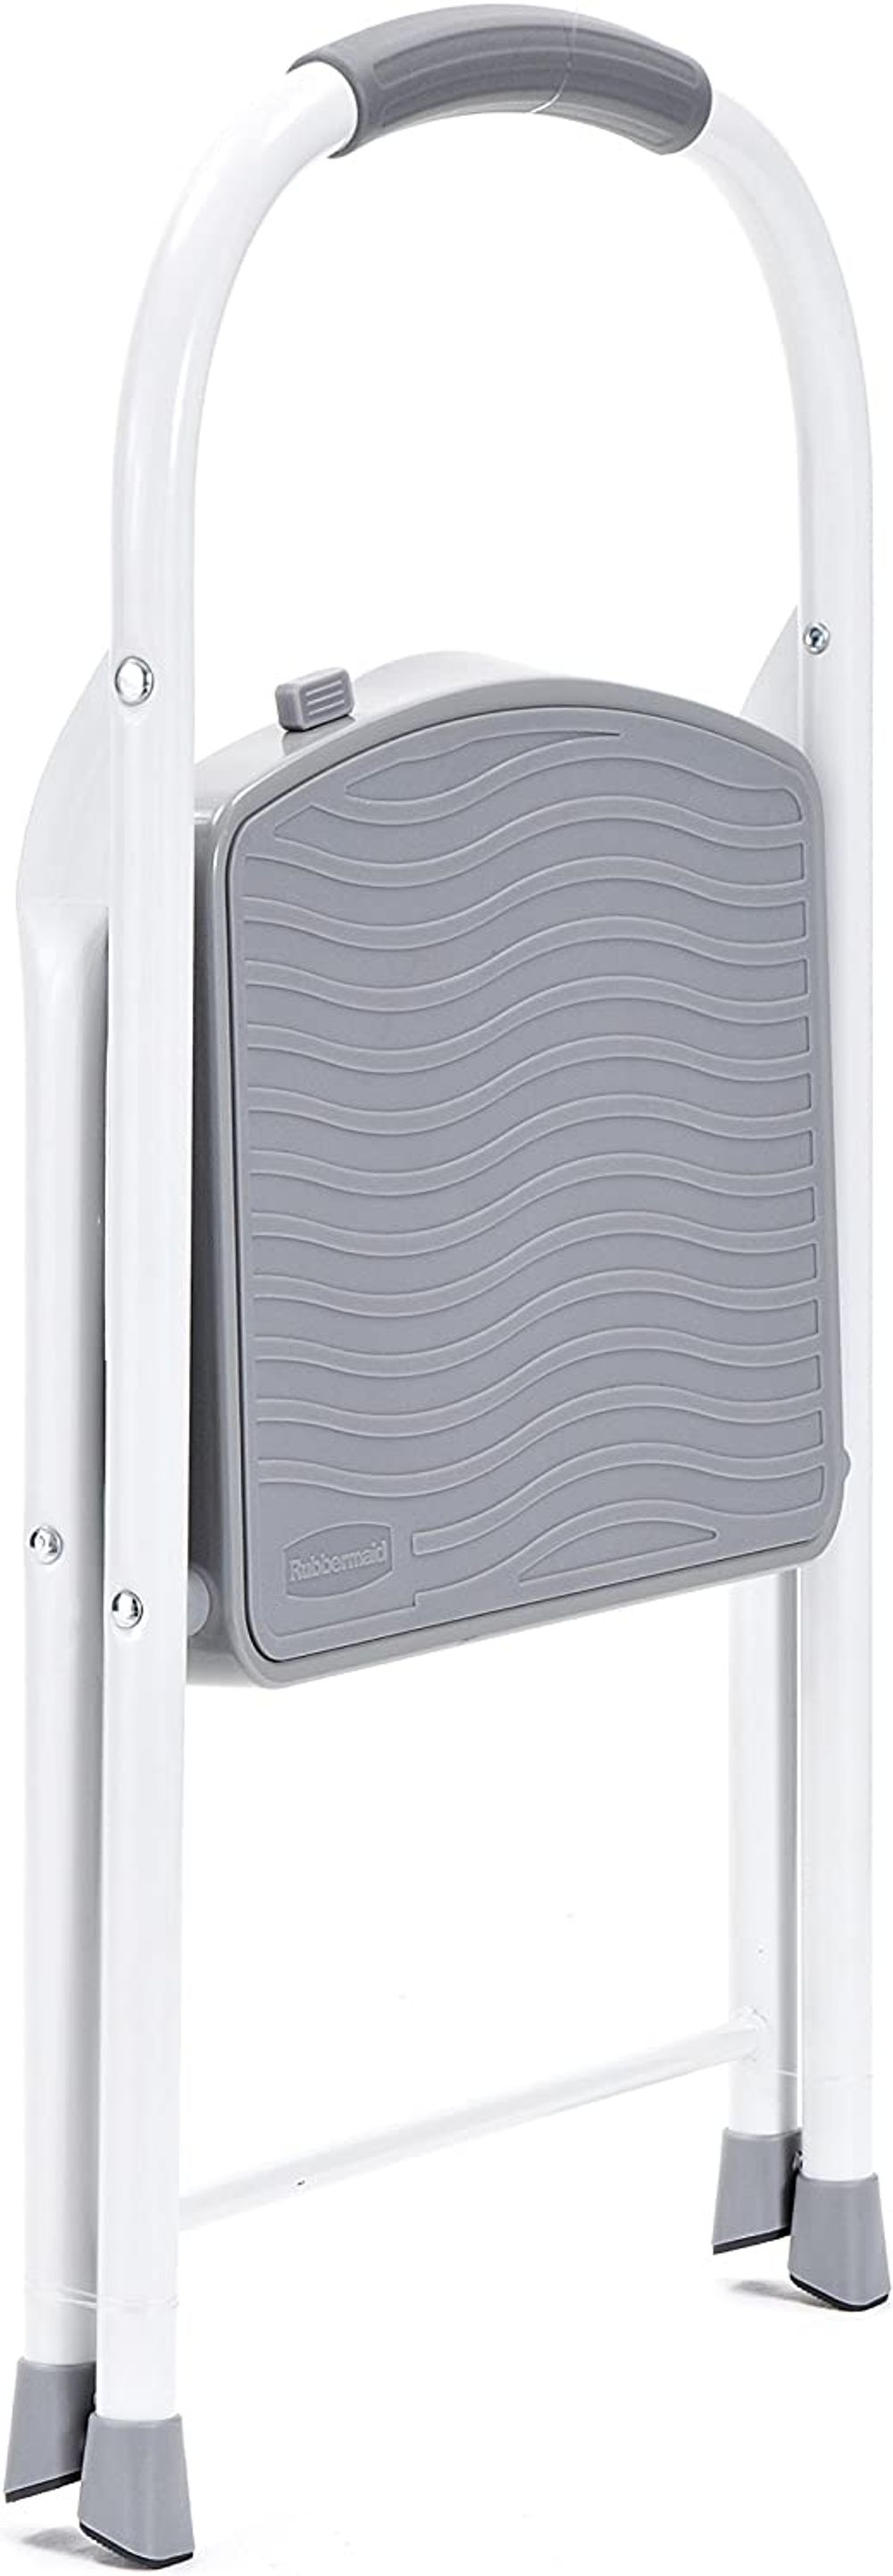 Rubbermaid RMS-1 1-Step Steel Step Stool, 225-pound Capacity, White